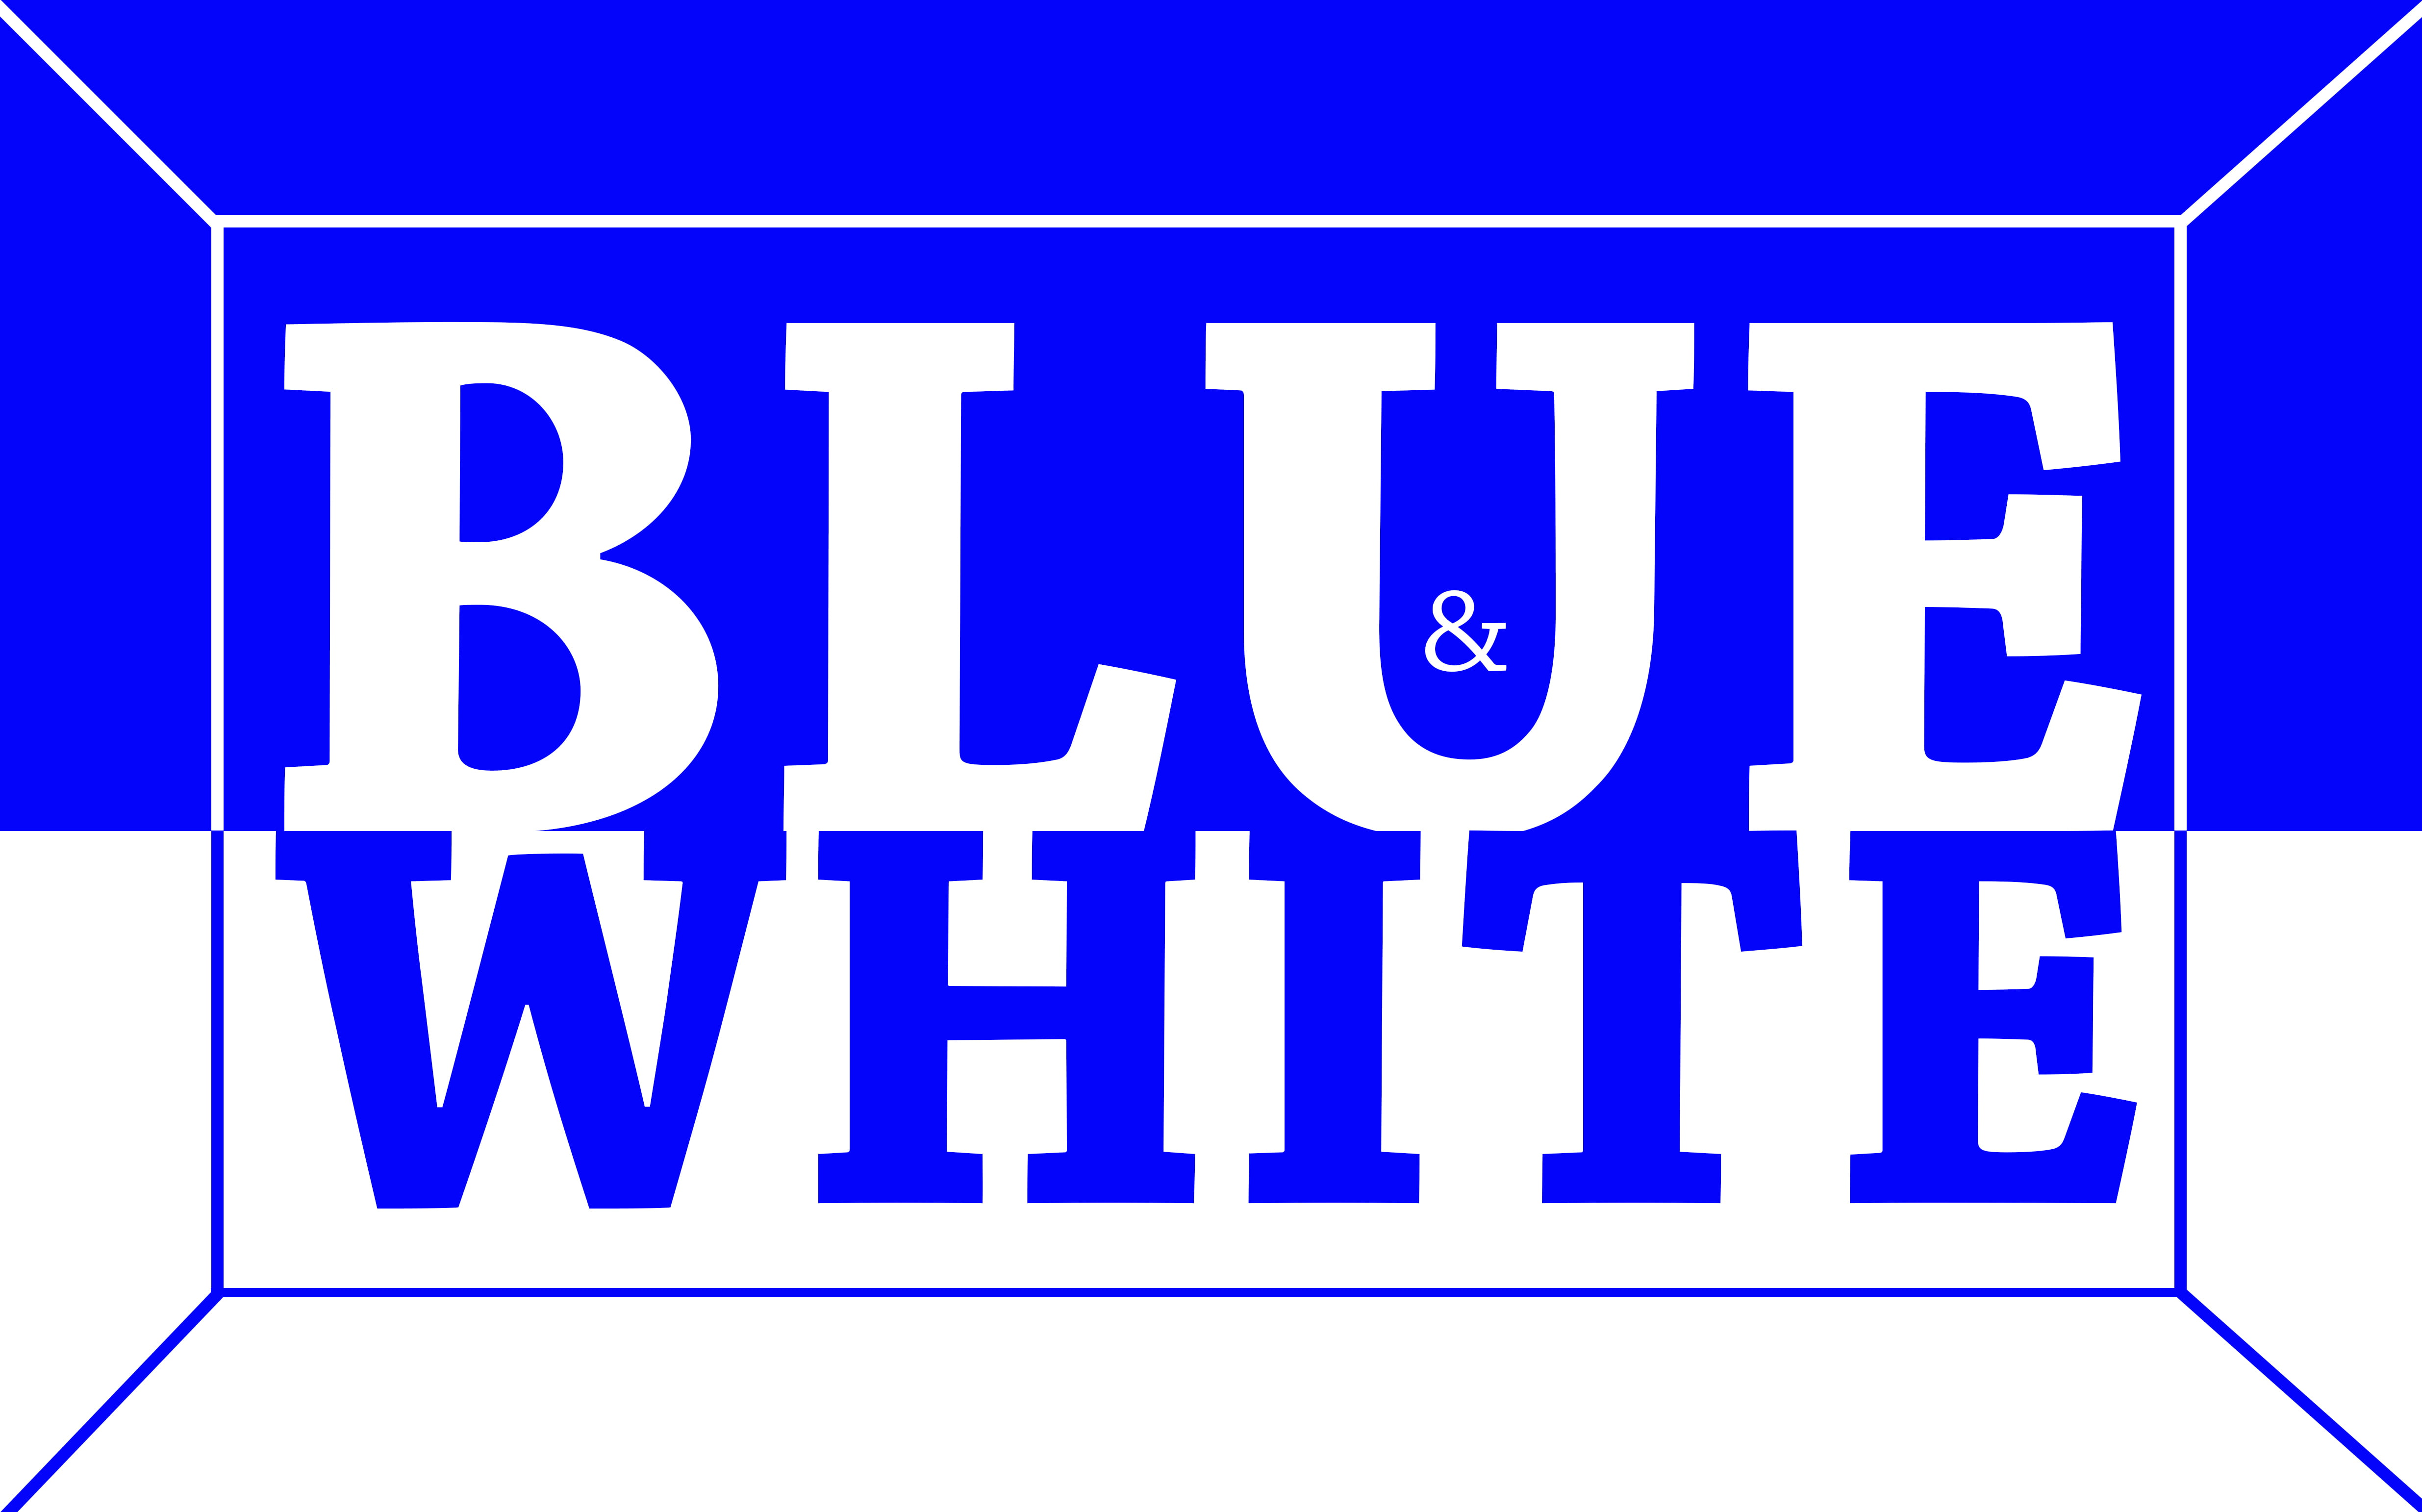 Blue and white design